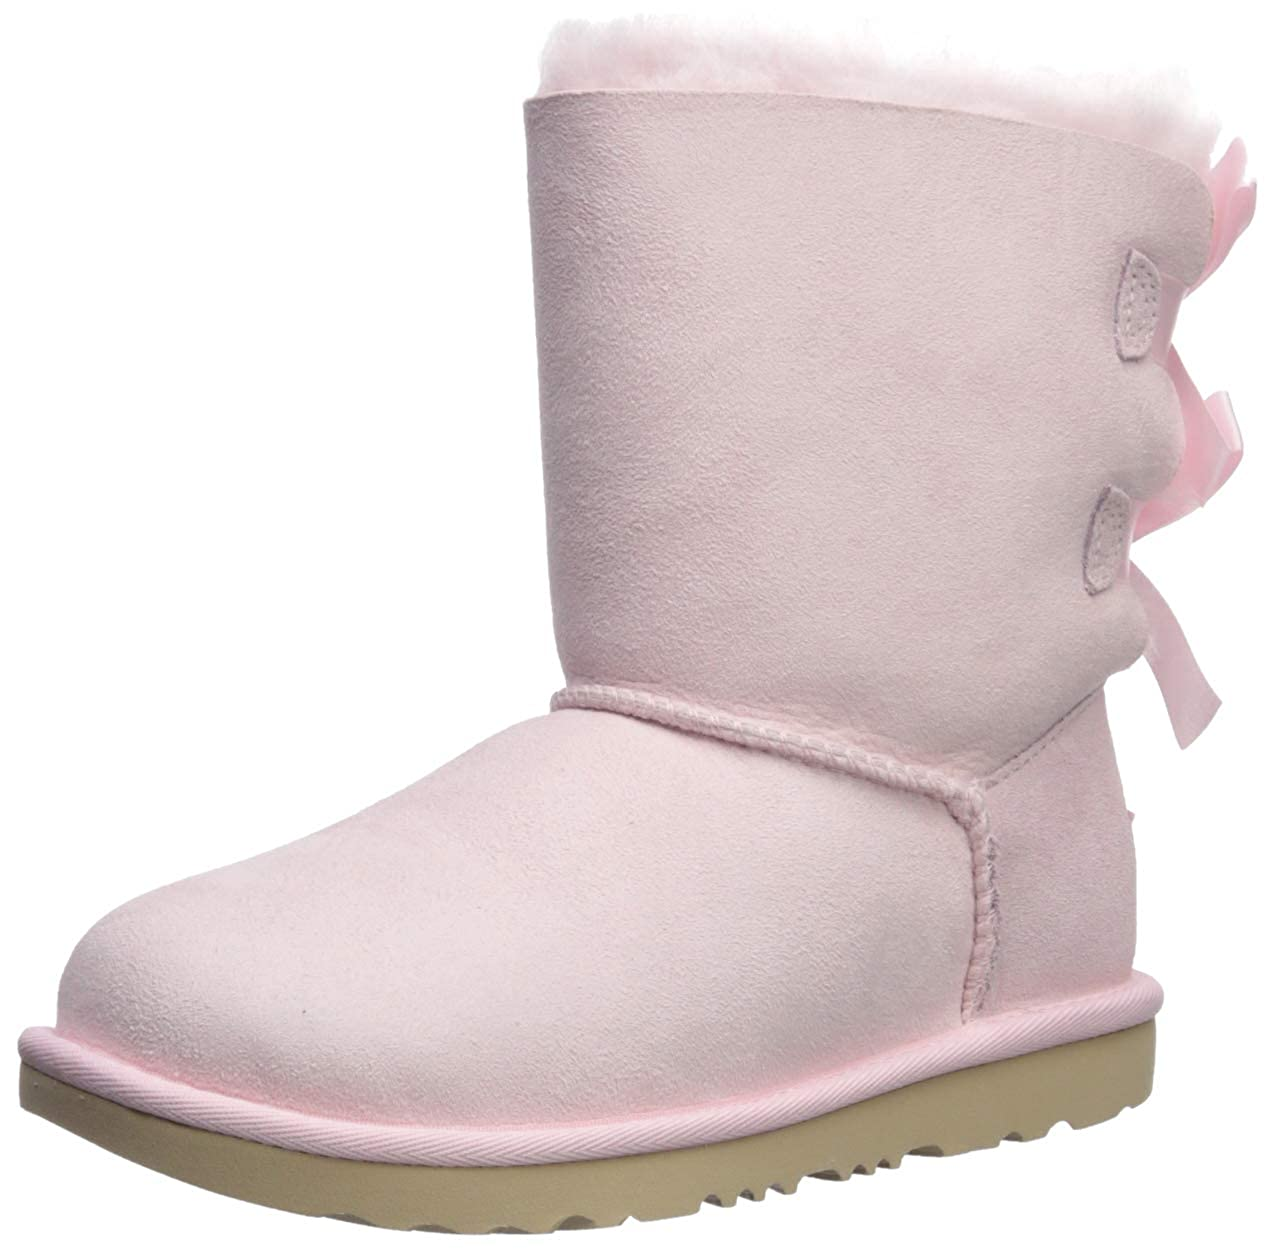 90dca0935a9 UGG Kids' K Bailey Bow Ii Fashion Boot